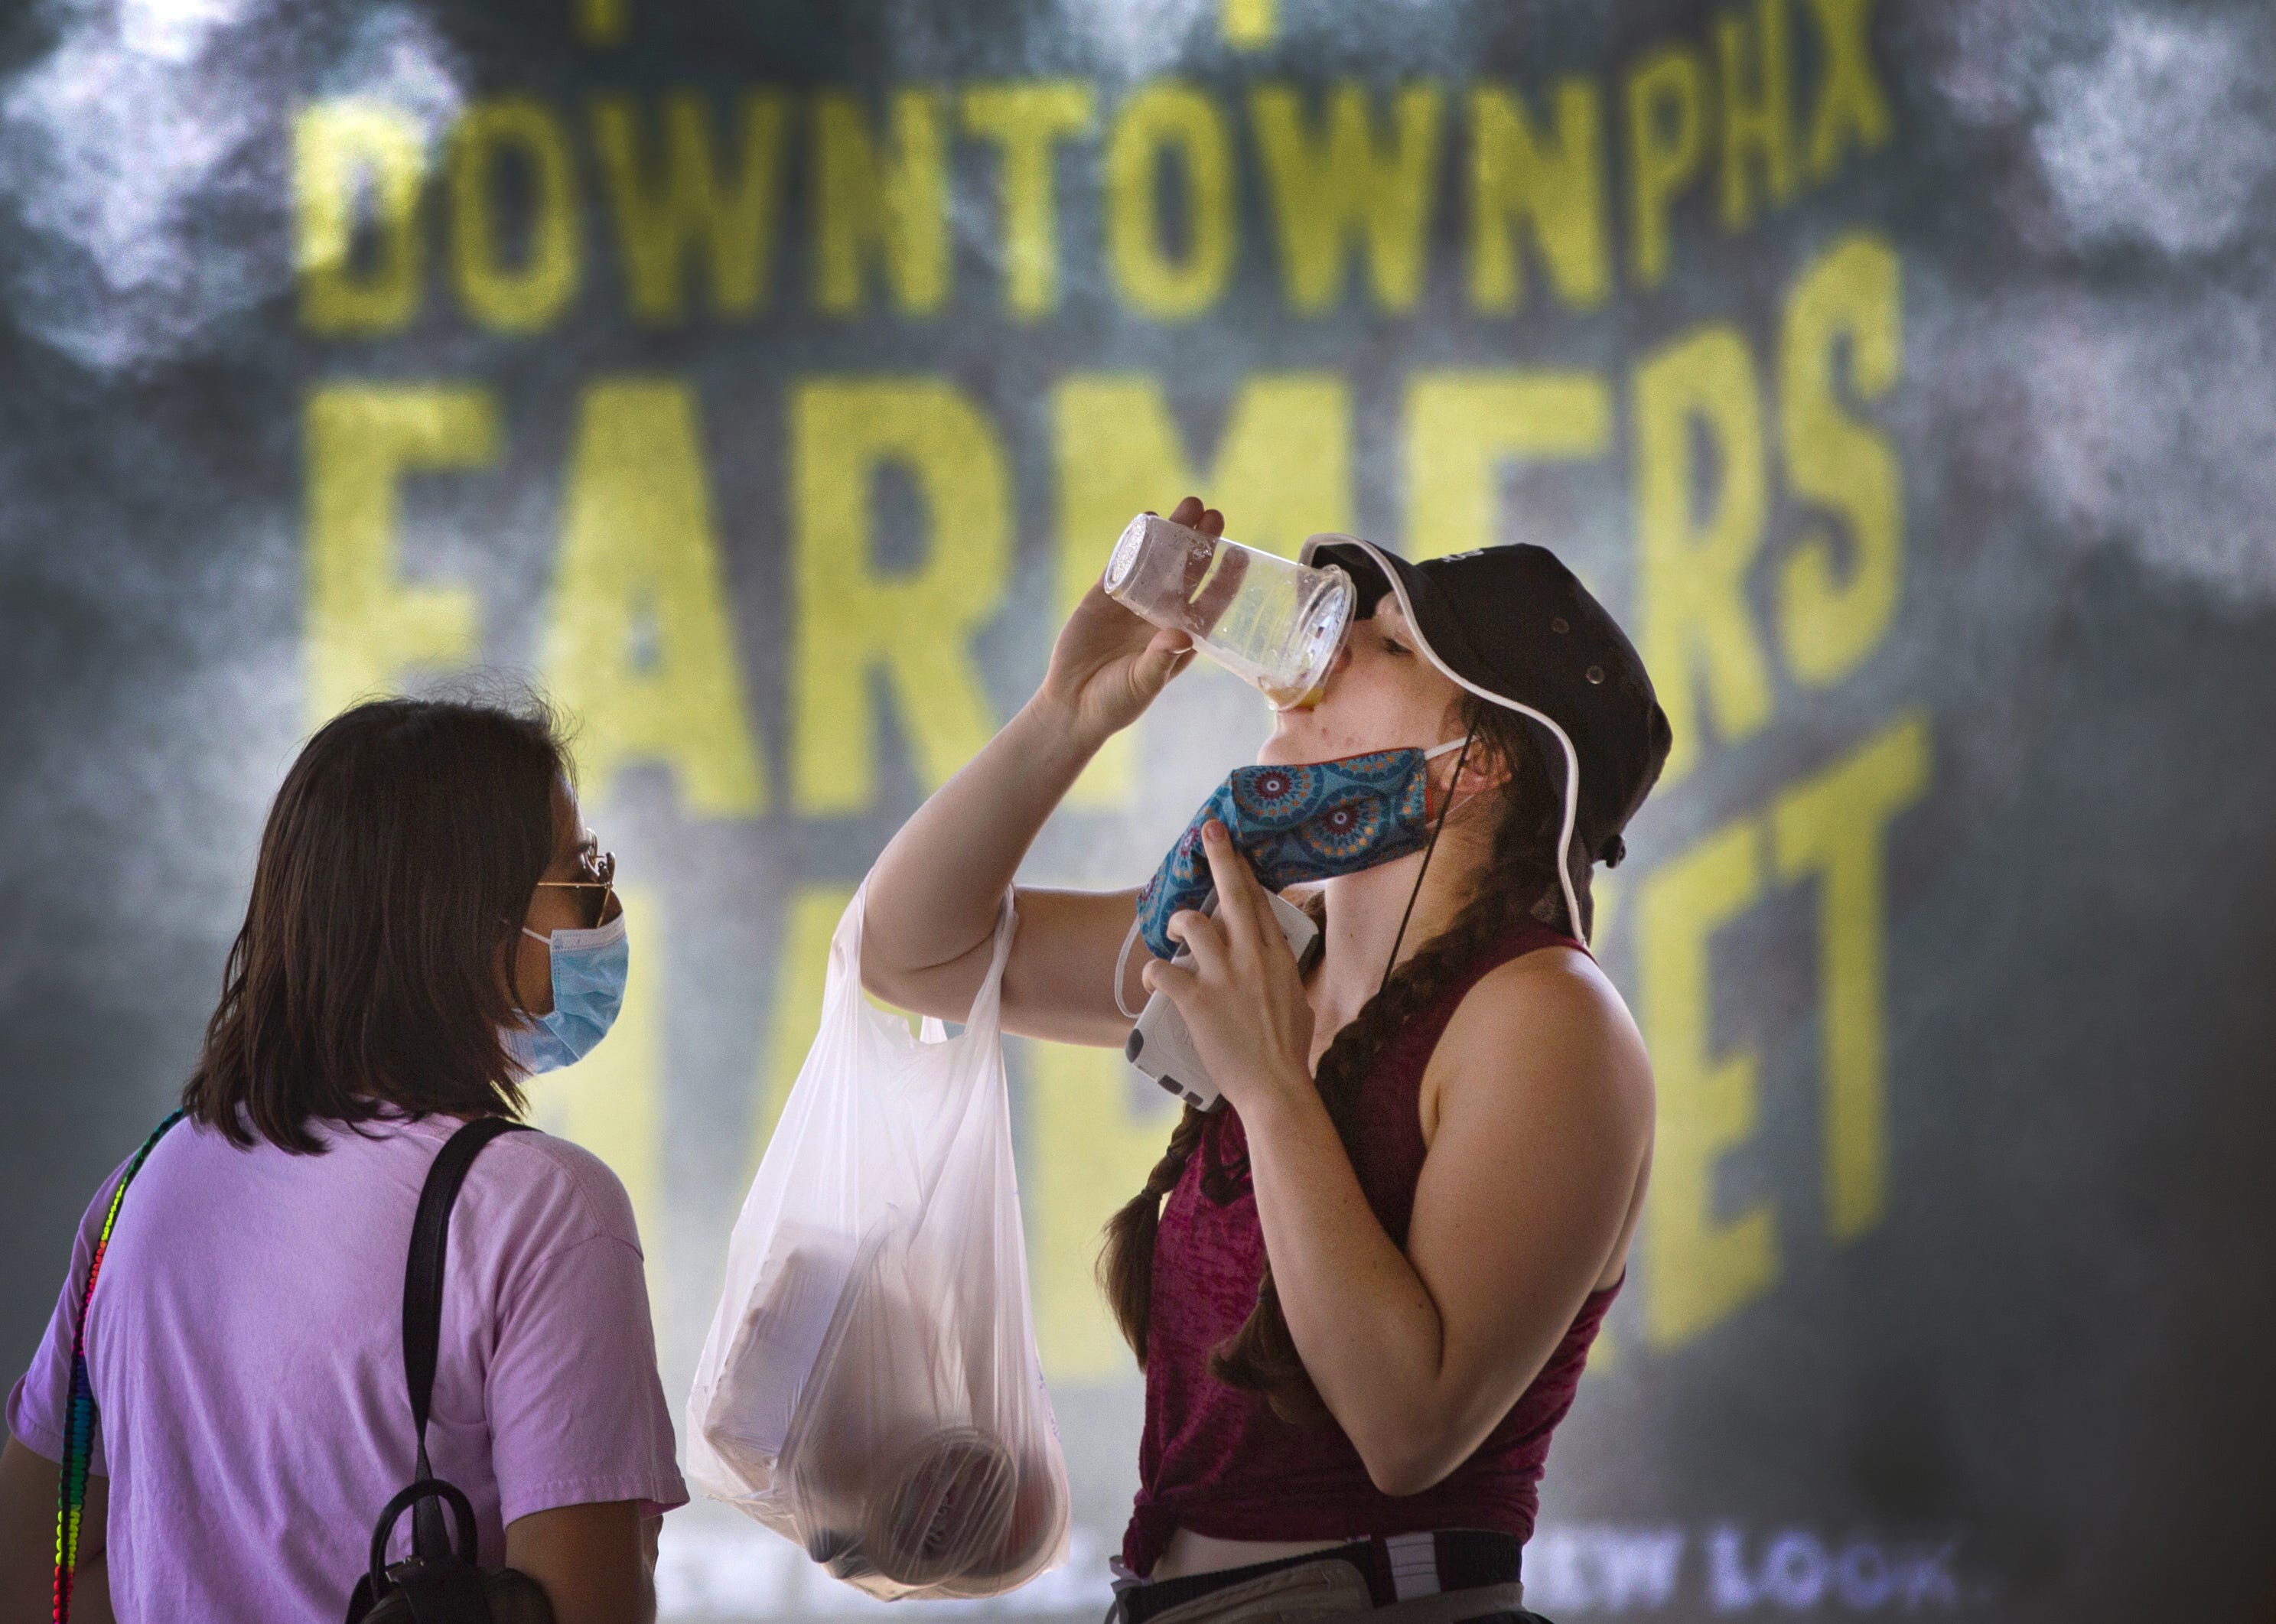 Samantha Godoy, left, and Katie Kelly, of Phoenix, keep cool under misters at the Downtown Farmers Market on July 25, 2020.